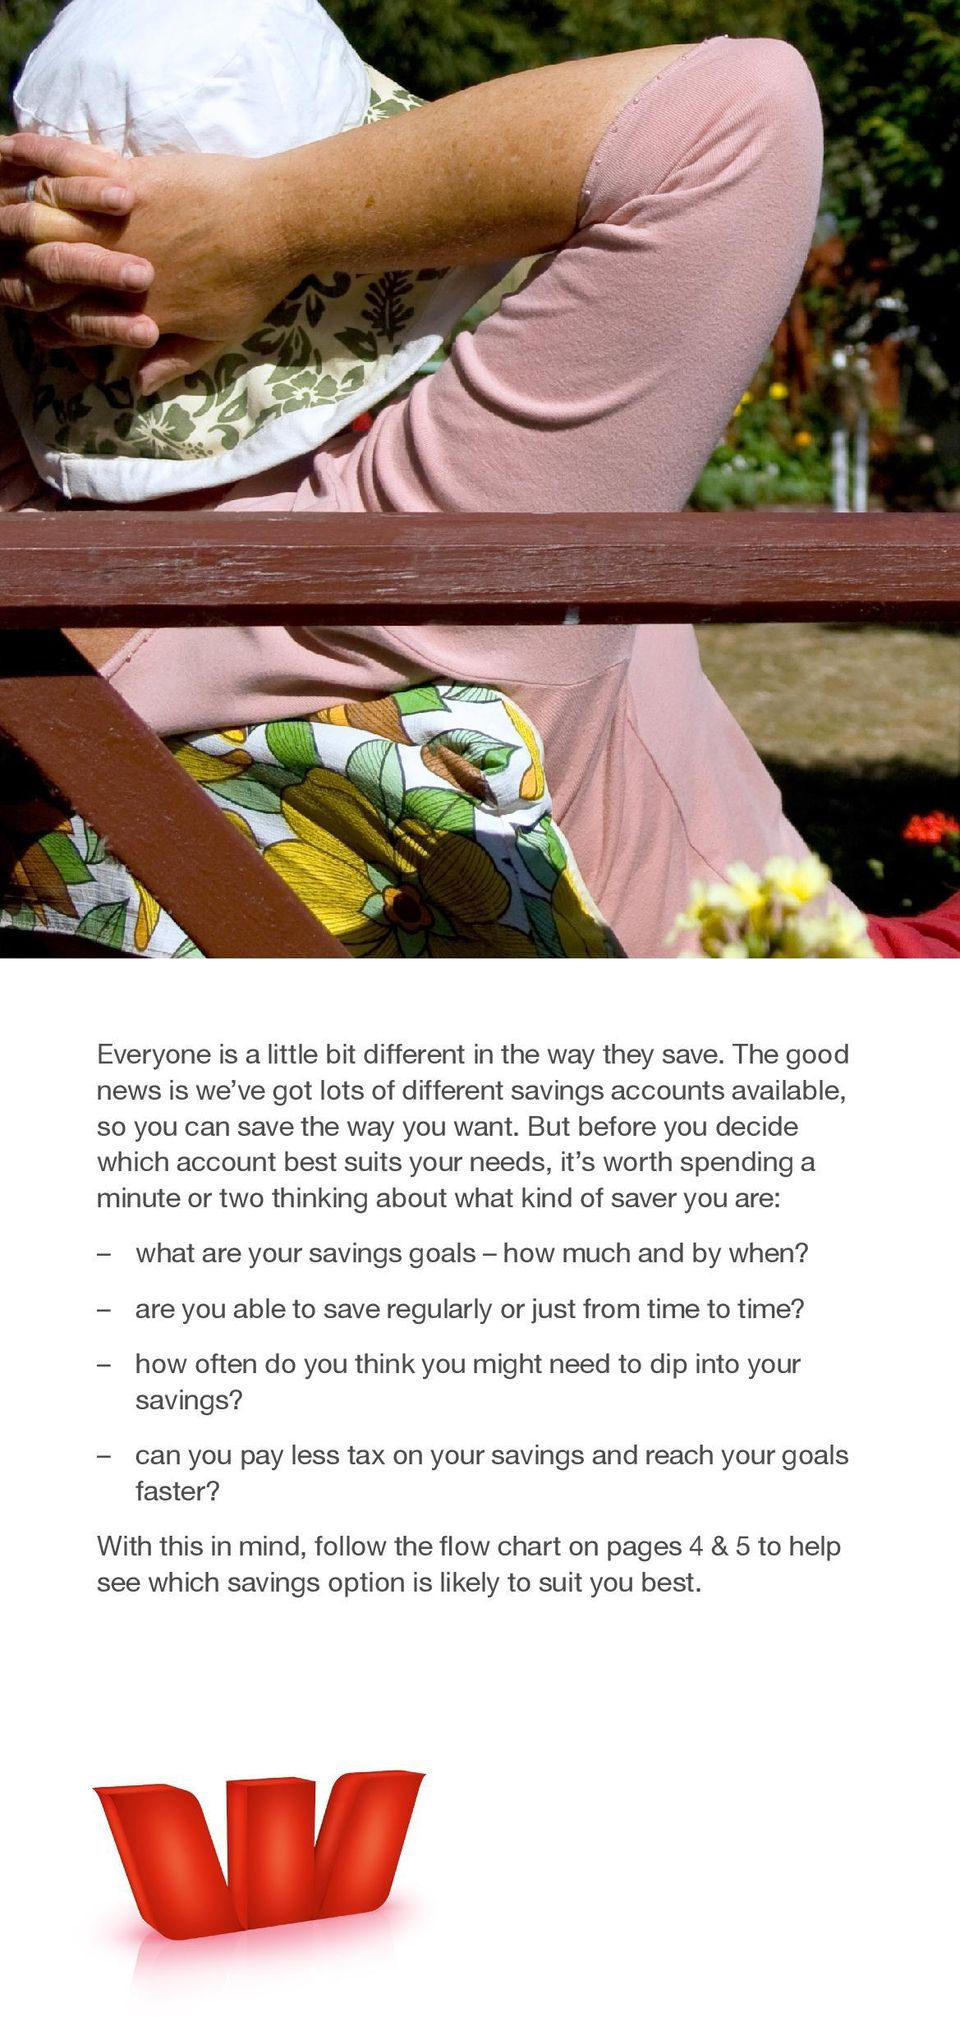 goals how much and by when? are you able to save regularly or just from time to time? how often do you think you might need to dip into your savings?